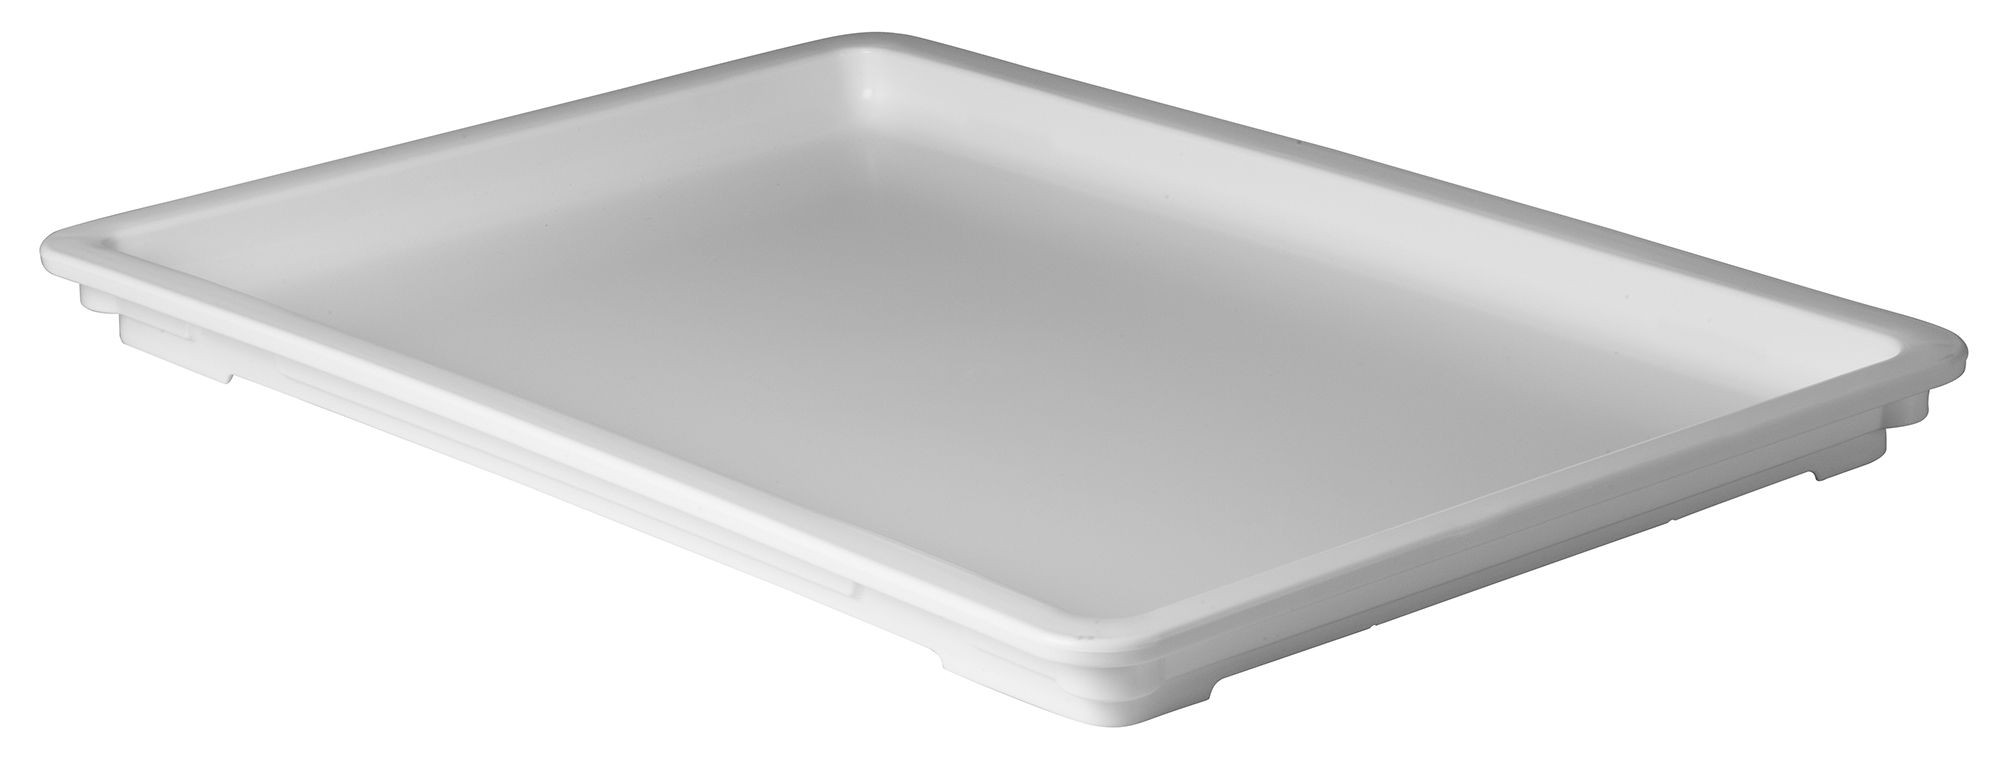 Winco PL-36NC Pizza Box Dough Cover for PL-3N and PL-6N